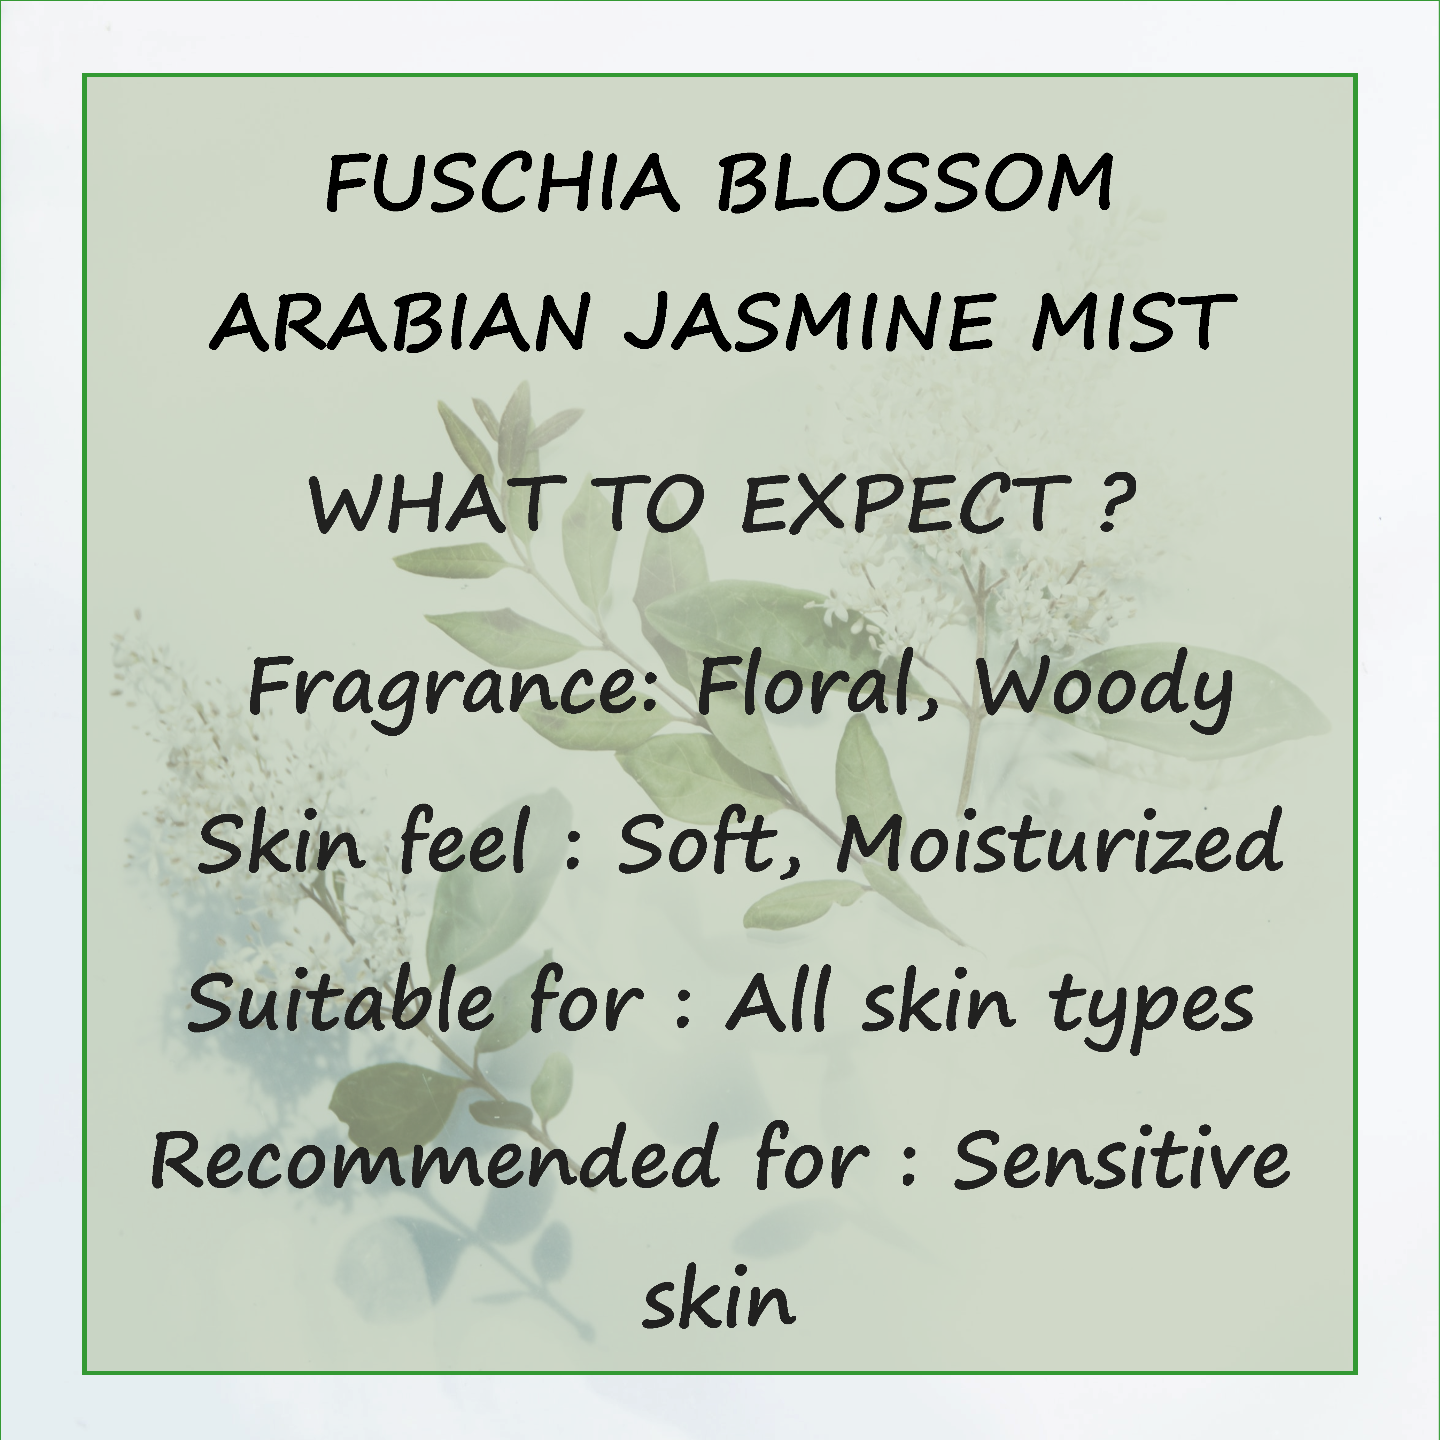 Fuschia Blossom Arabian Jasmine Face & Body Mist - 30 ml